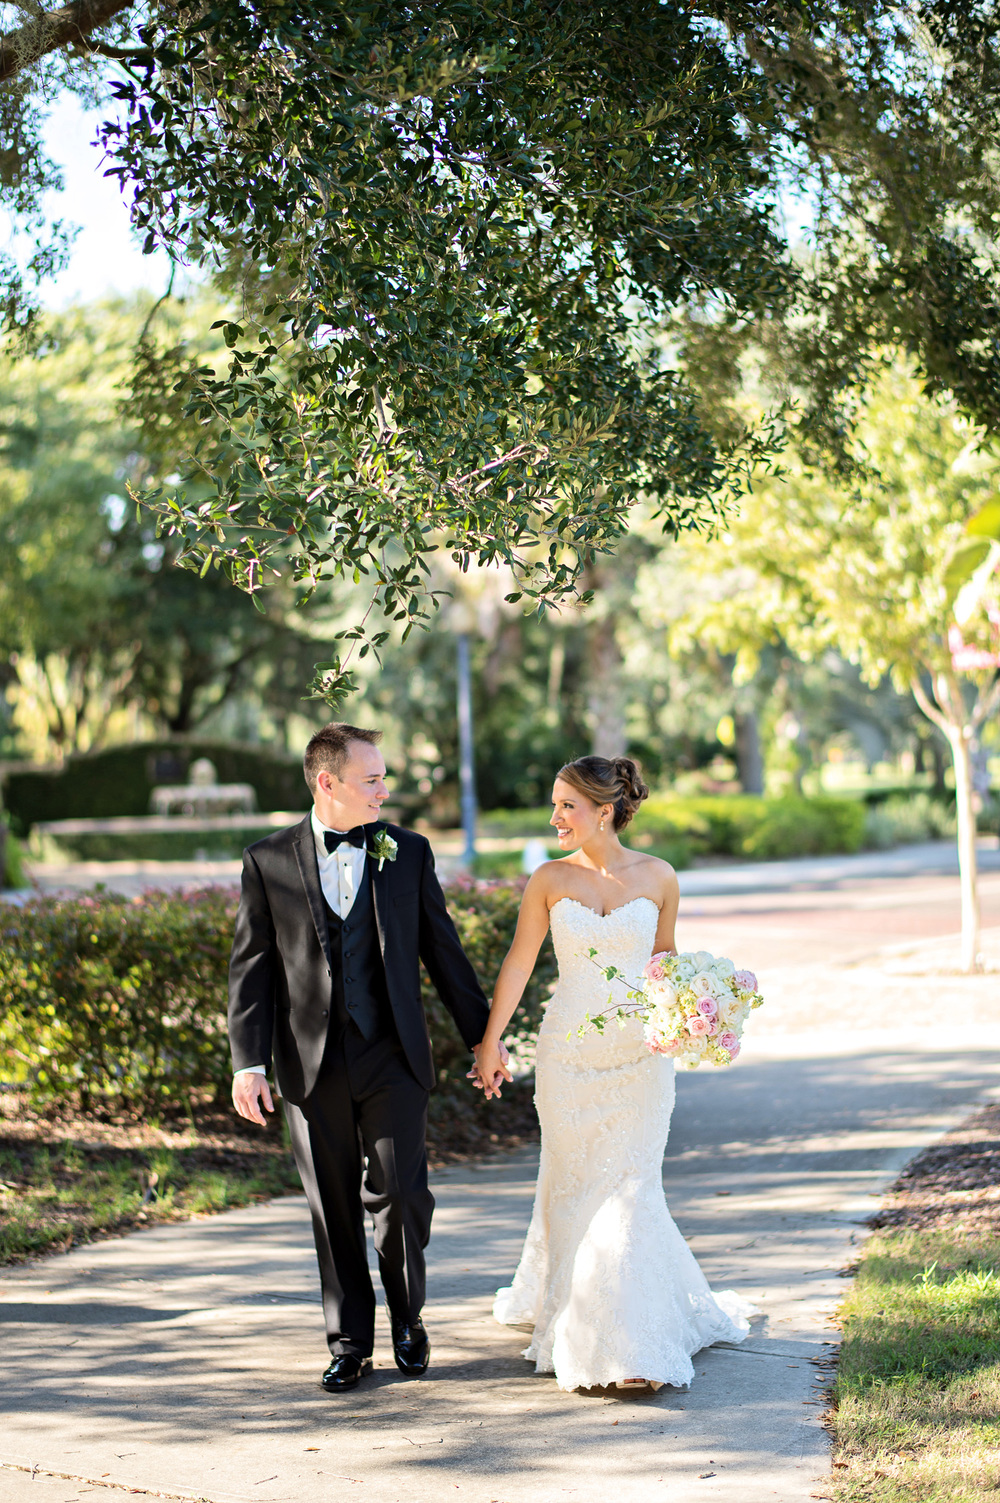 kristenweaver.com | Kristen Weaver Photography | Casa Feliz Weddings | Winter Park Florida Wedding Photographer | Destination Wedding Photography